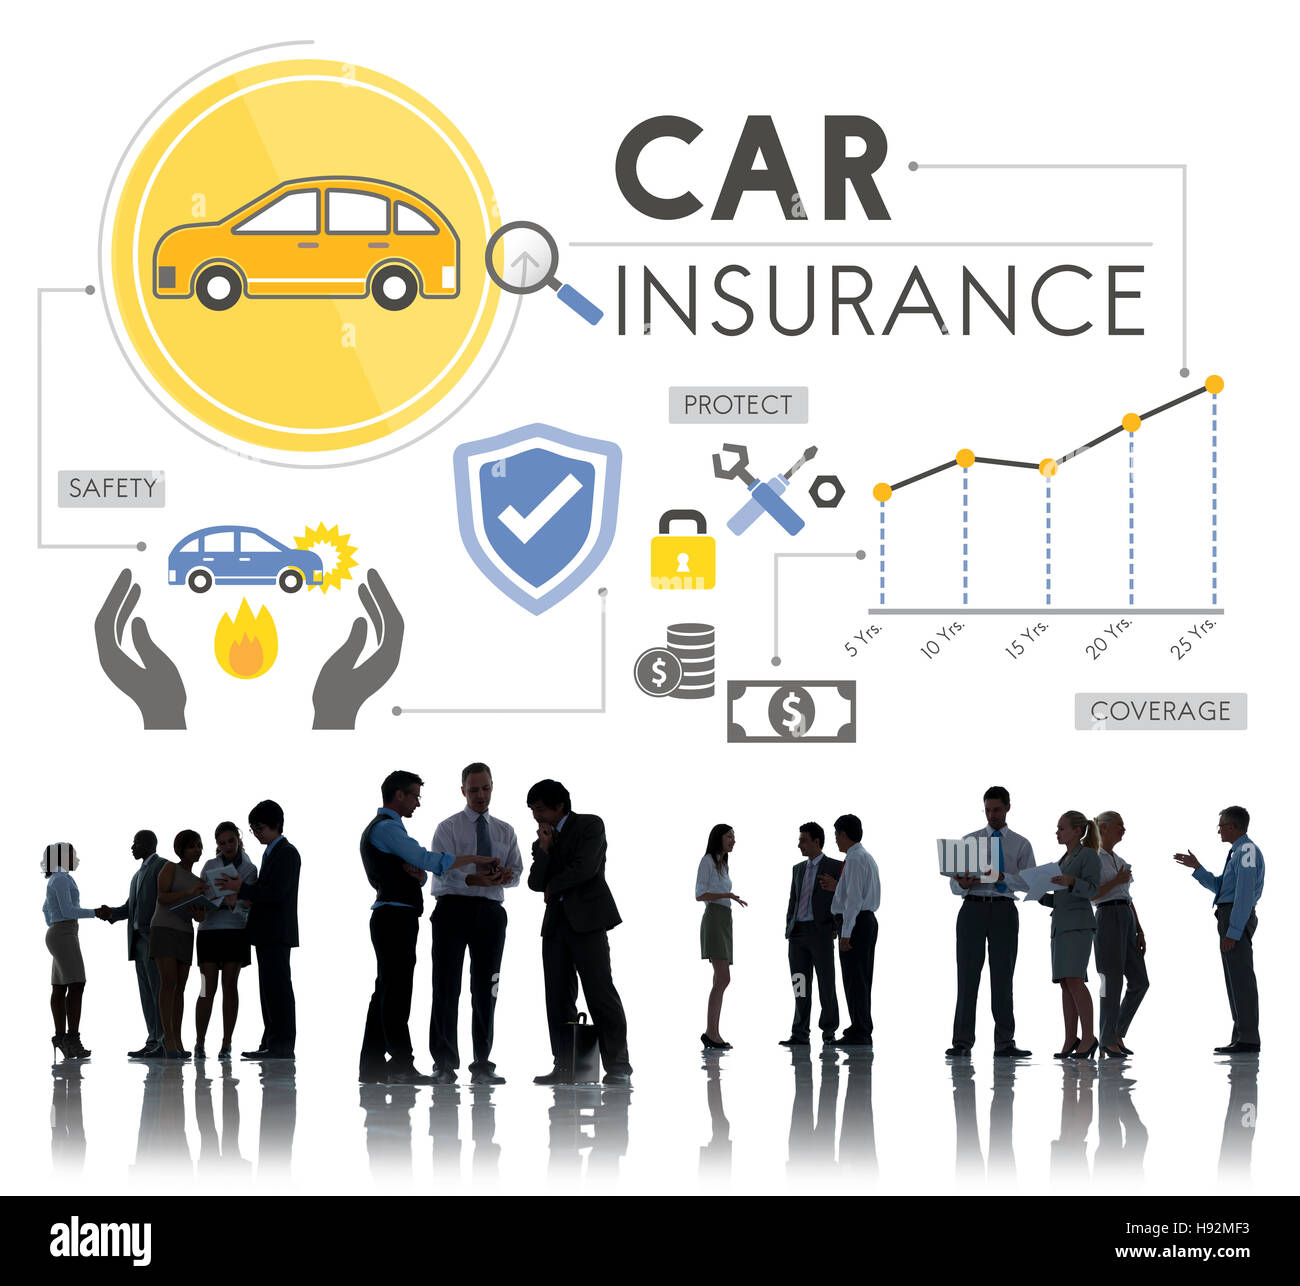 Car Insurance Policies Safety Coverage Concept - Stock Image